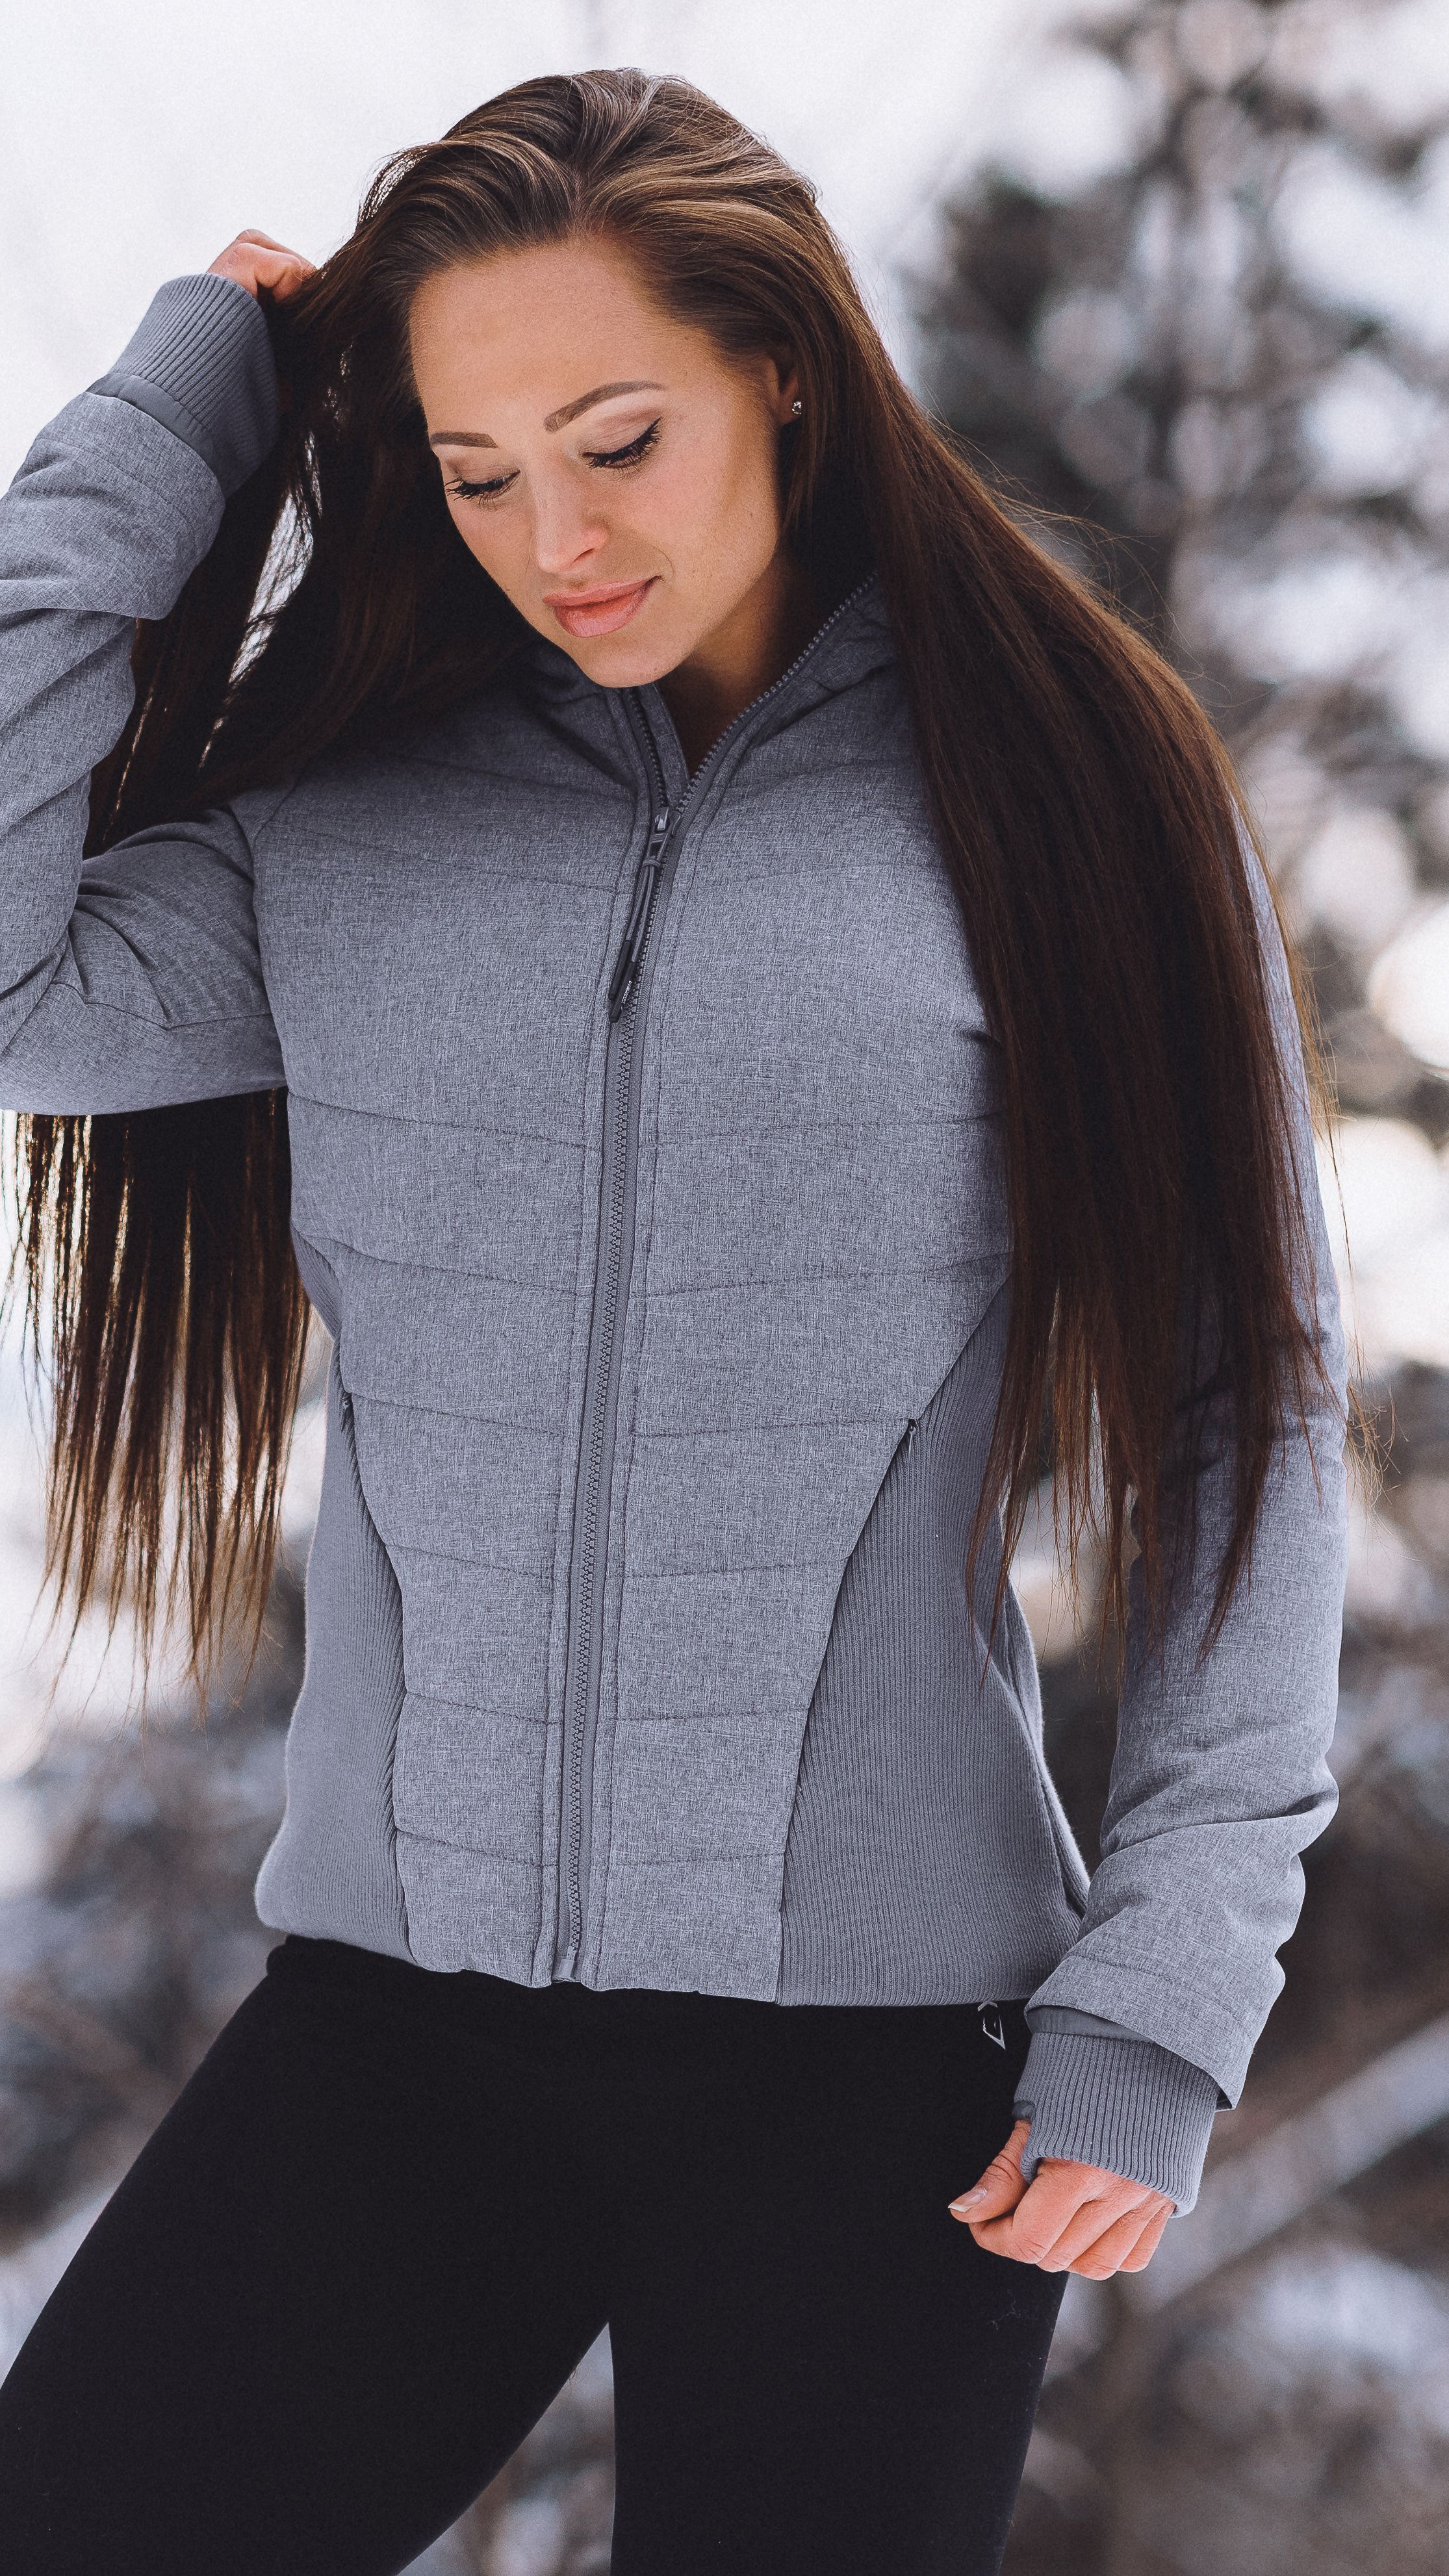 Keep Warm Against The Elements In The Gymshark Women S Mellow Puffer Jacket Fully Lined For Your Comfort Warm Jackets For Women Gymshark Women Puffer Jackets [ 3965 x 2230 Pixel ]